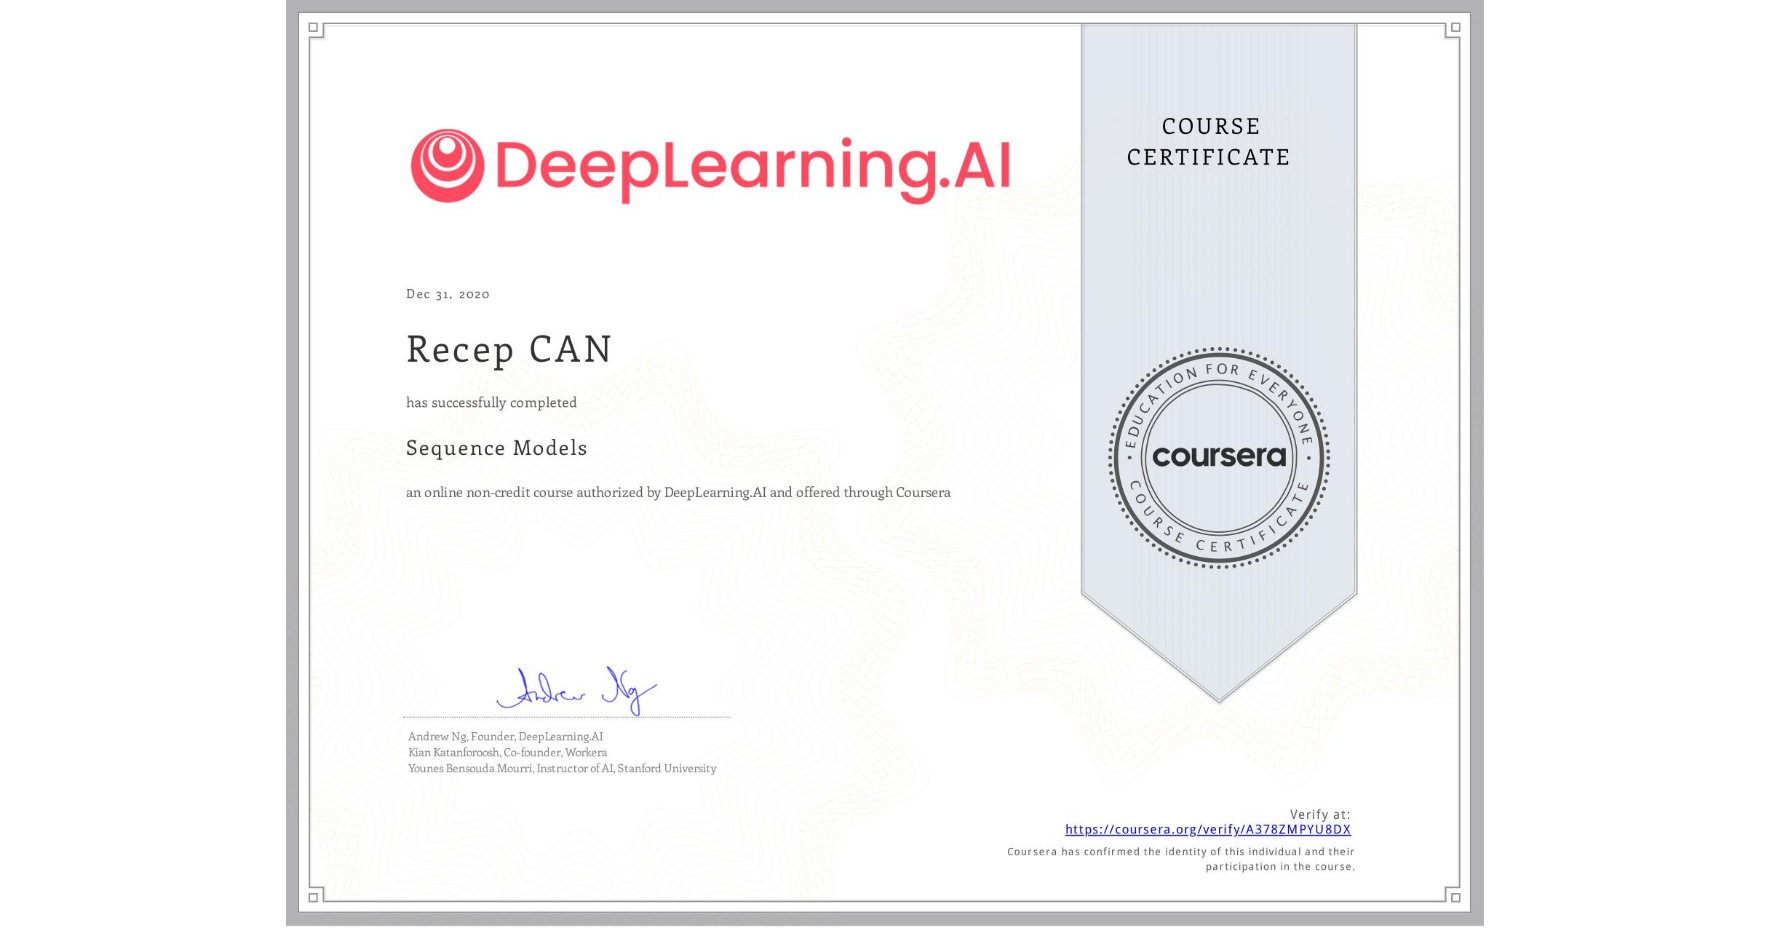 View certificate for Recep CAN, Sequence Models, an online non-credit course authorized by DeepLearning.AI and offered through Coursera